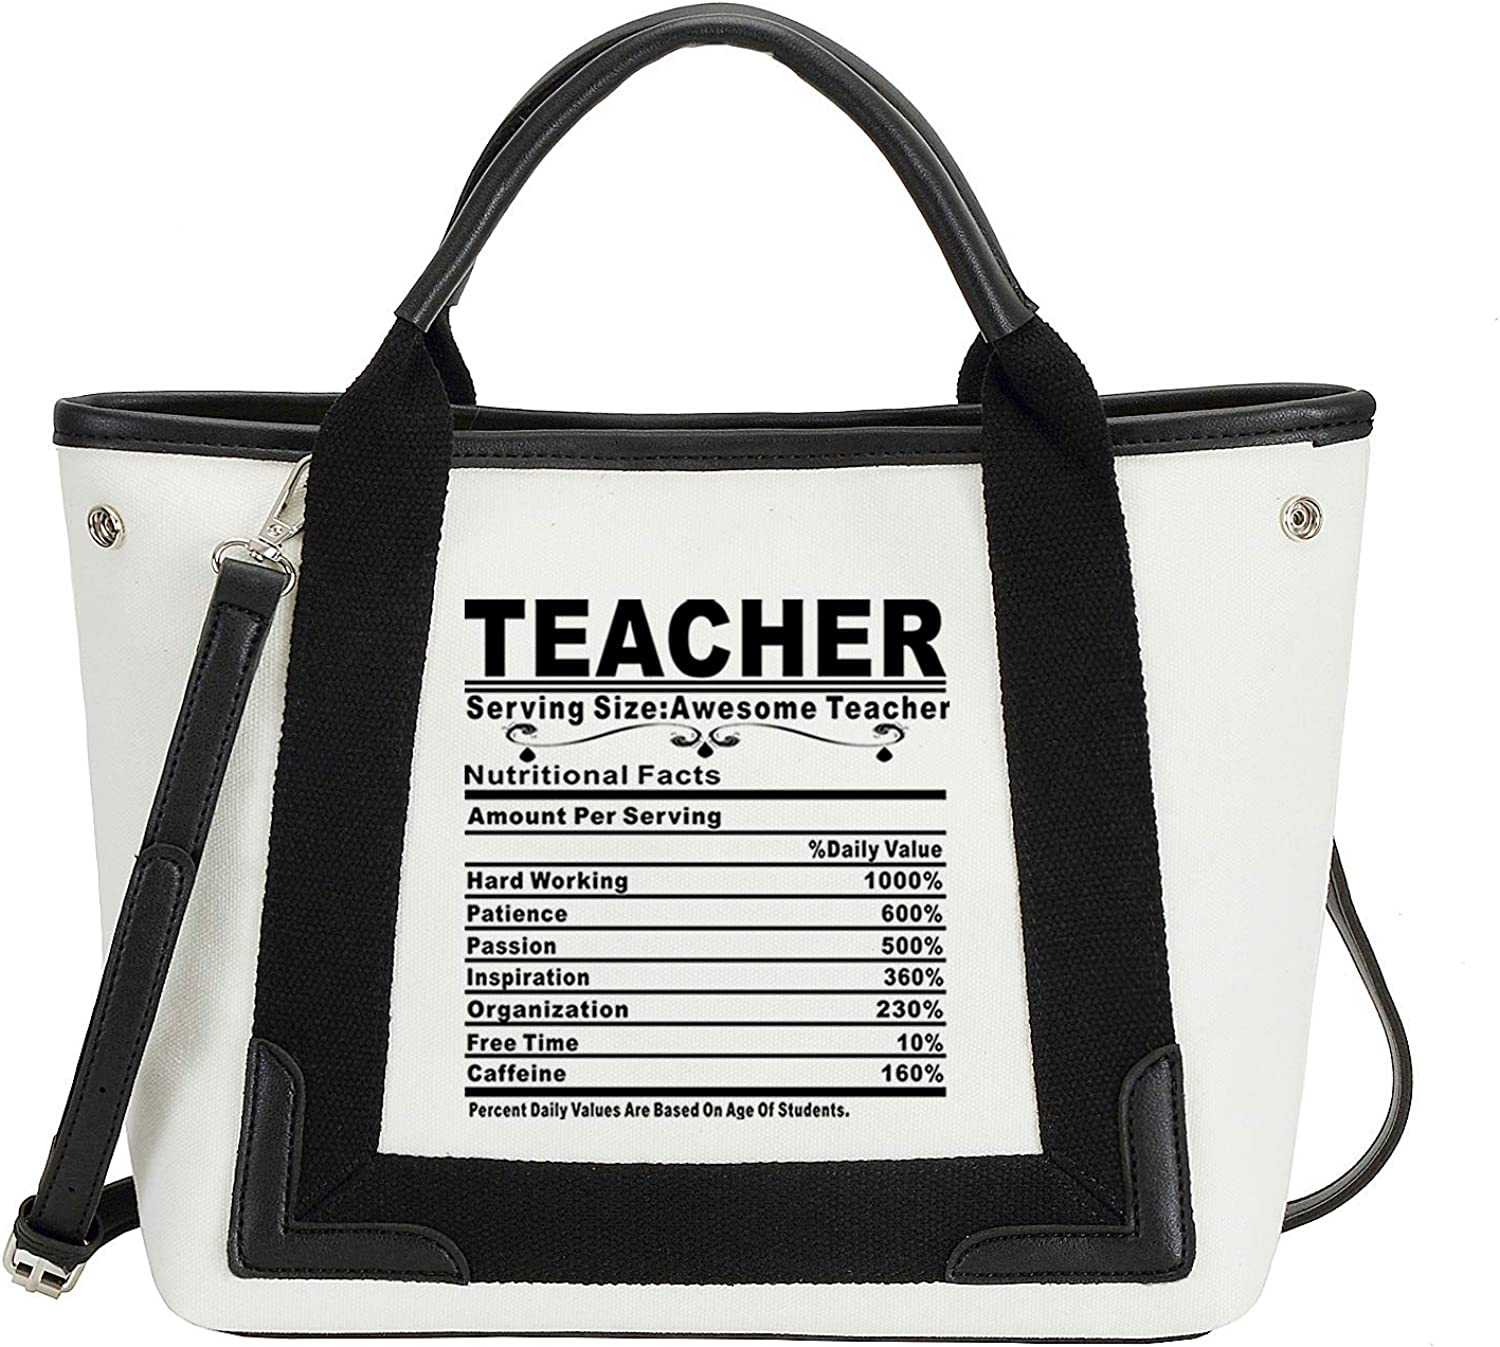 20 Best Teacher Bags on Amazon Right Now_ Teacher serving size awesome